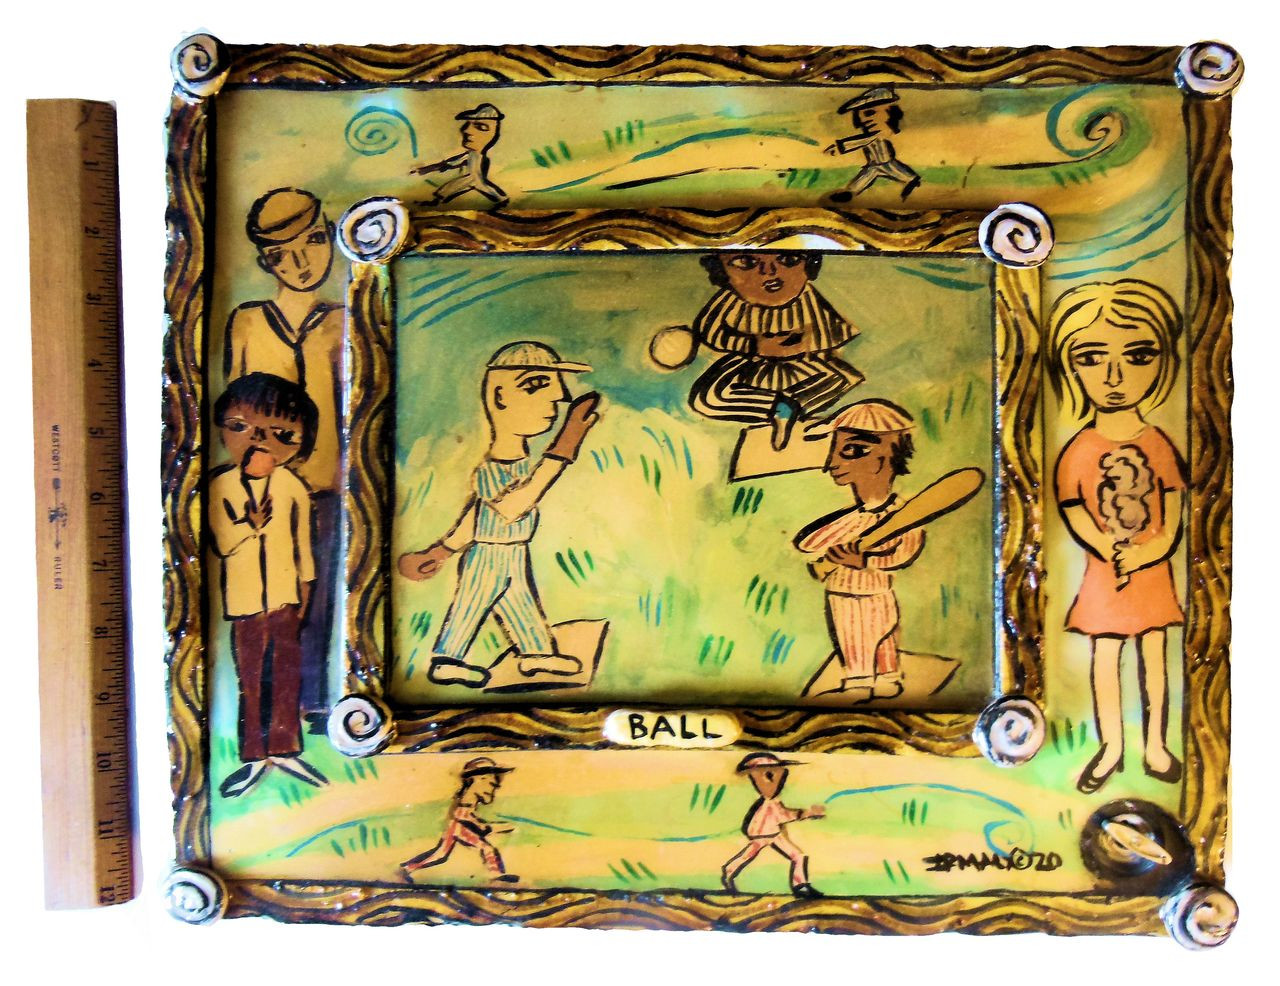 Irmaly Brackin, folk art, baseball hanging wall art with music box ...